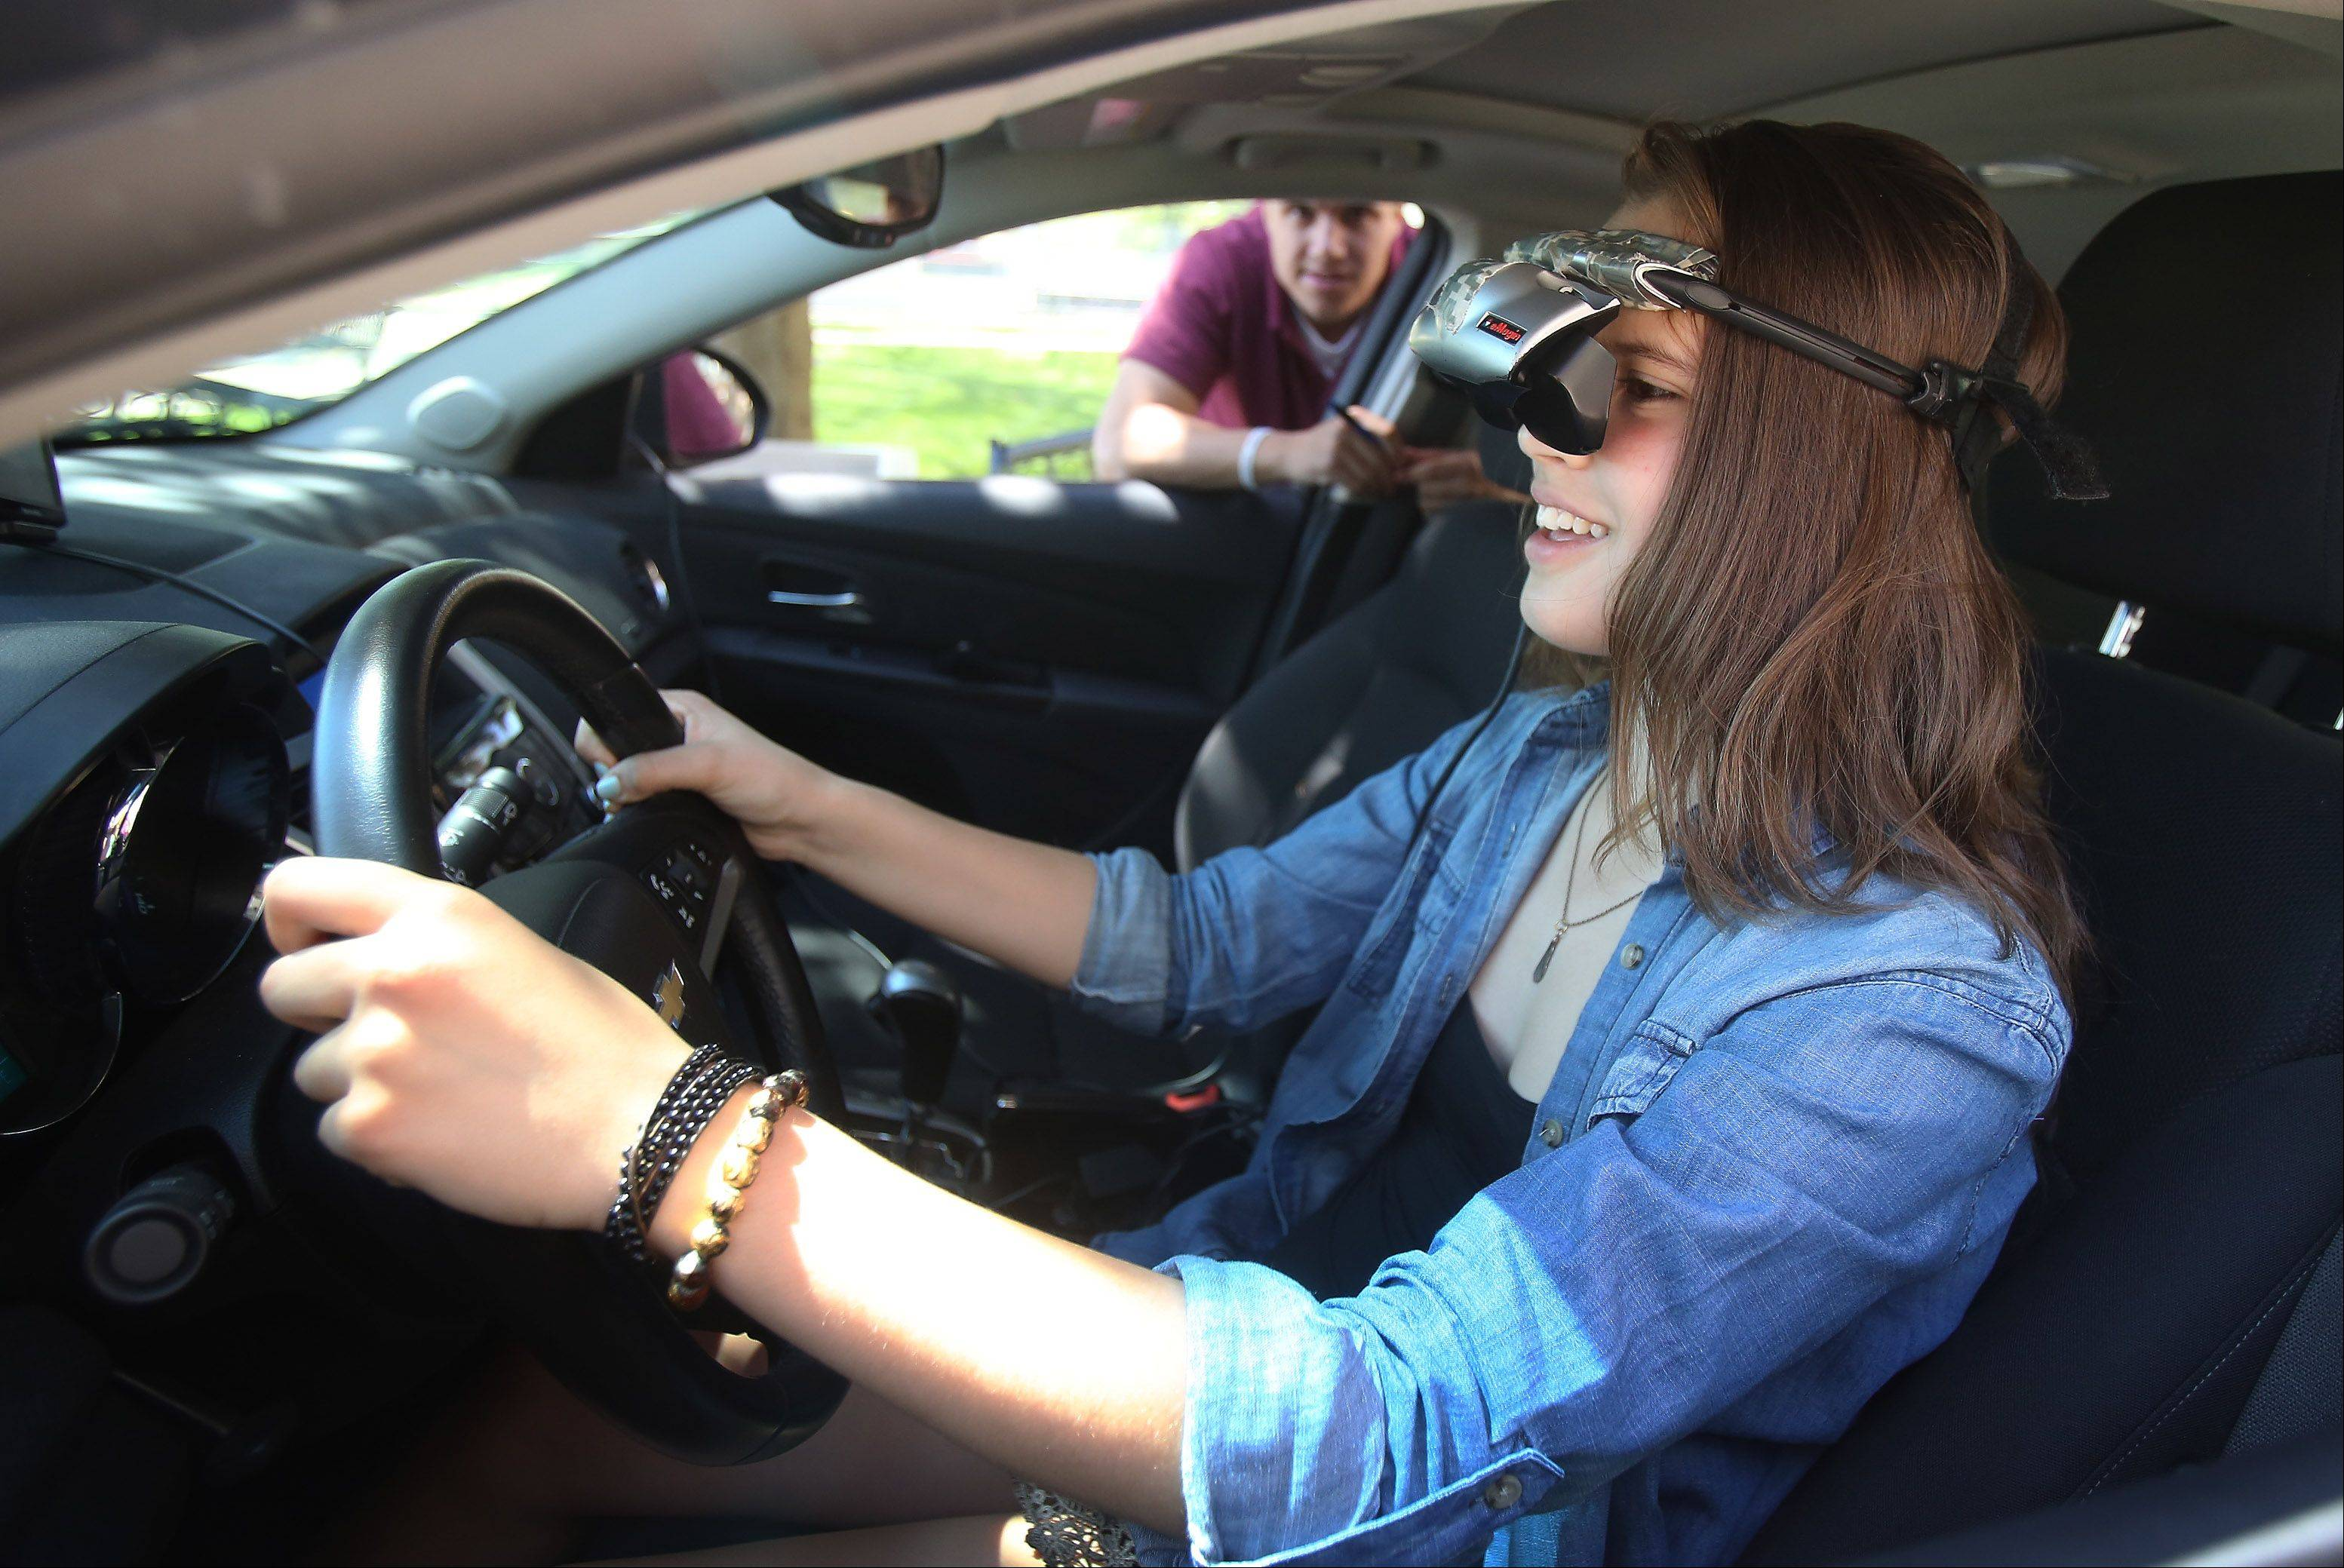 Sophomore Ava Polzin tries to drive the simulator during a distracted and drunk driving education program, in a high-tech simulator, by UNITE's ArriveAliveTour 2013 at Libertyville High School. The program helps students understand the dangers and consequences of drunk driving and texting while driving.